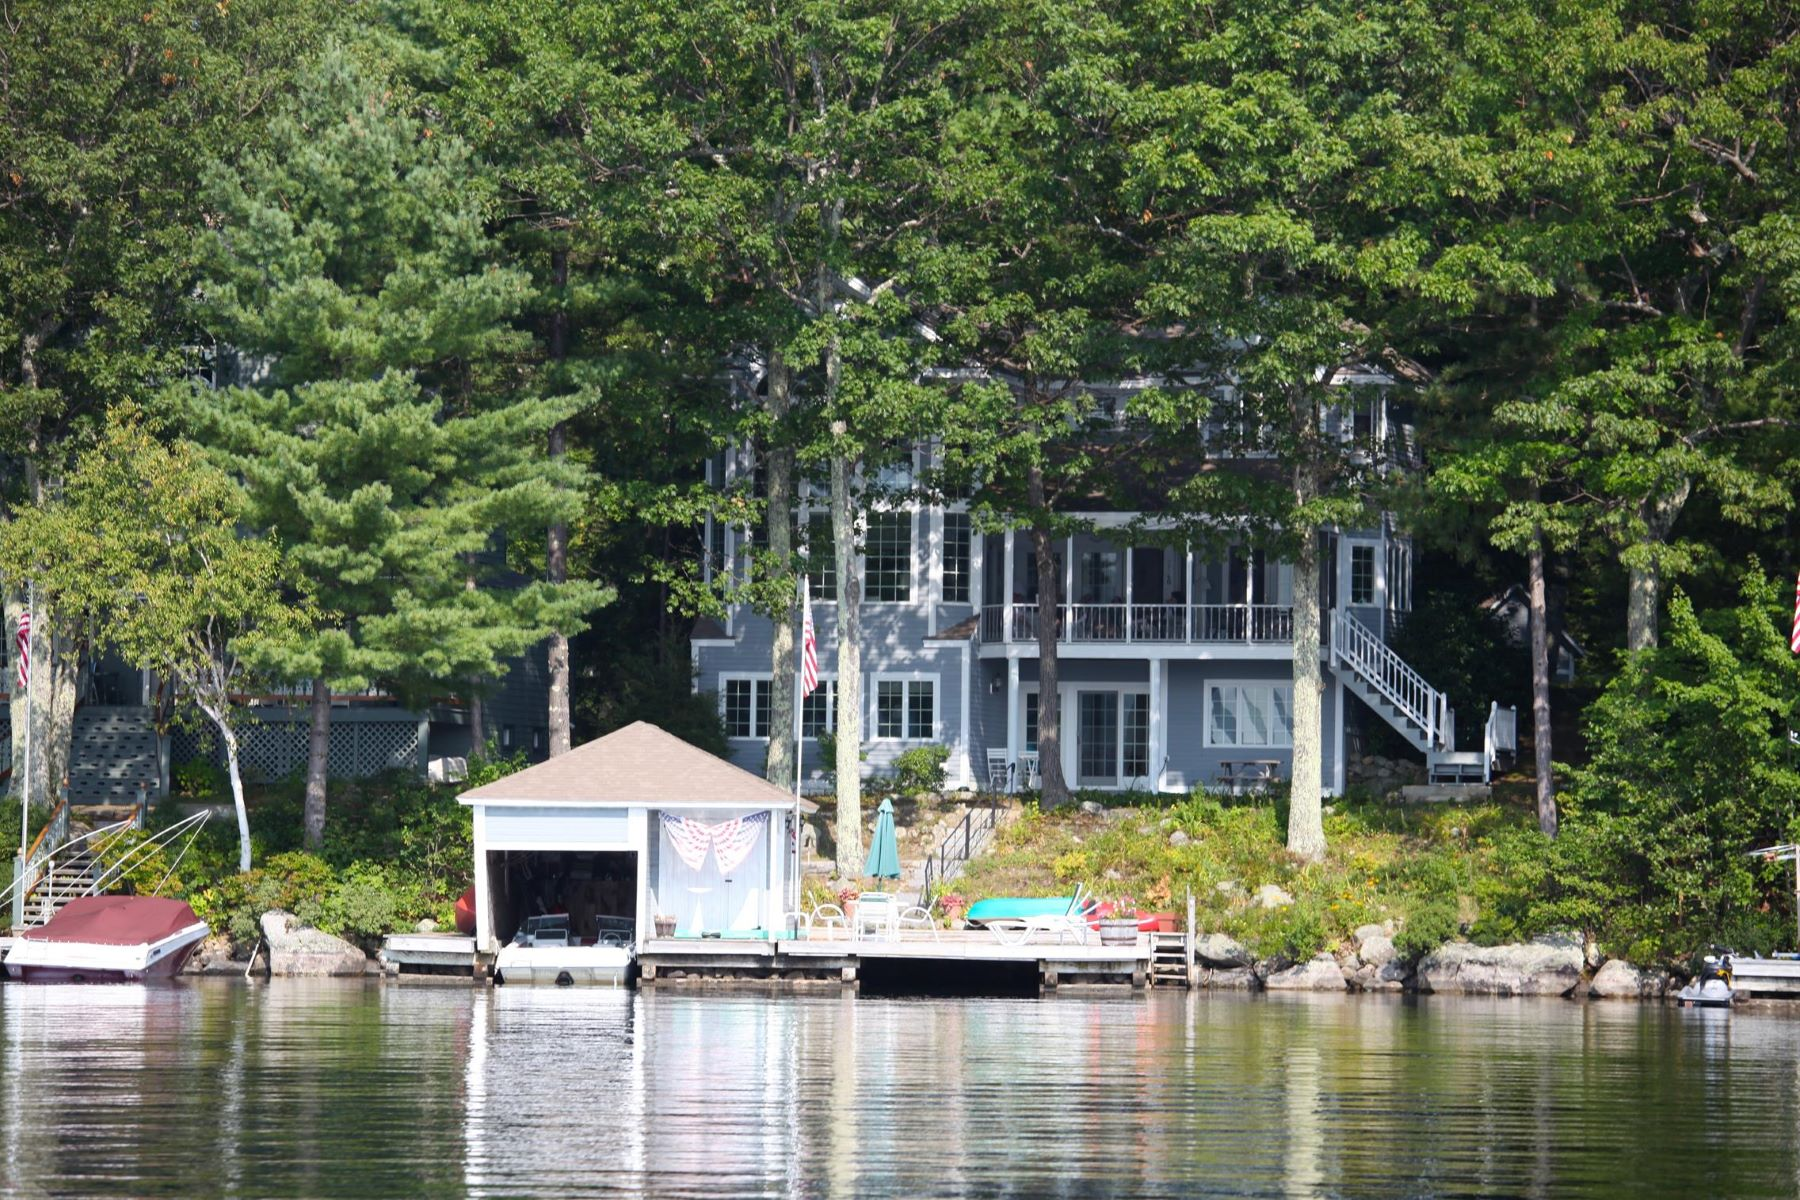 Single Family Home for Sale at Lake Sunapee Property 5 Bay Point Landing Newbury, New Hampshire 03255 United States